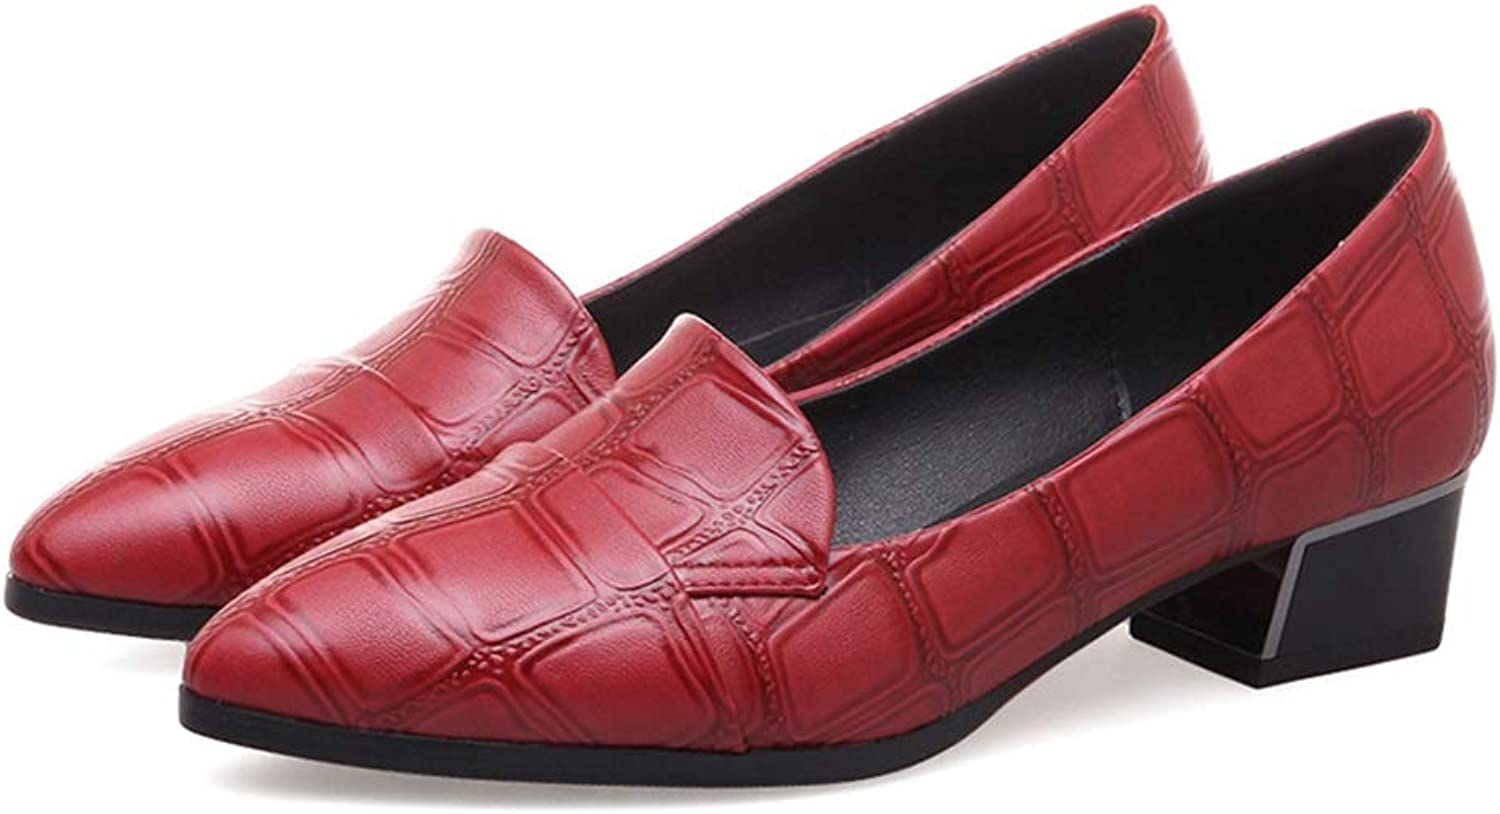 T-JULY British Concise Women Loafers Embossed Faux Crocodile PU Leather Casual Pointed Toe Flats Slip-on Retro Oxford Dress